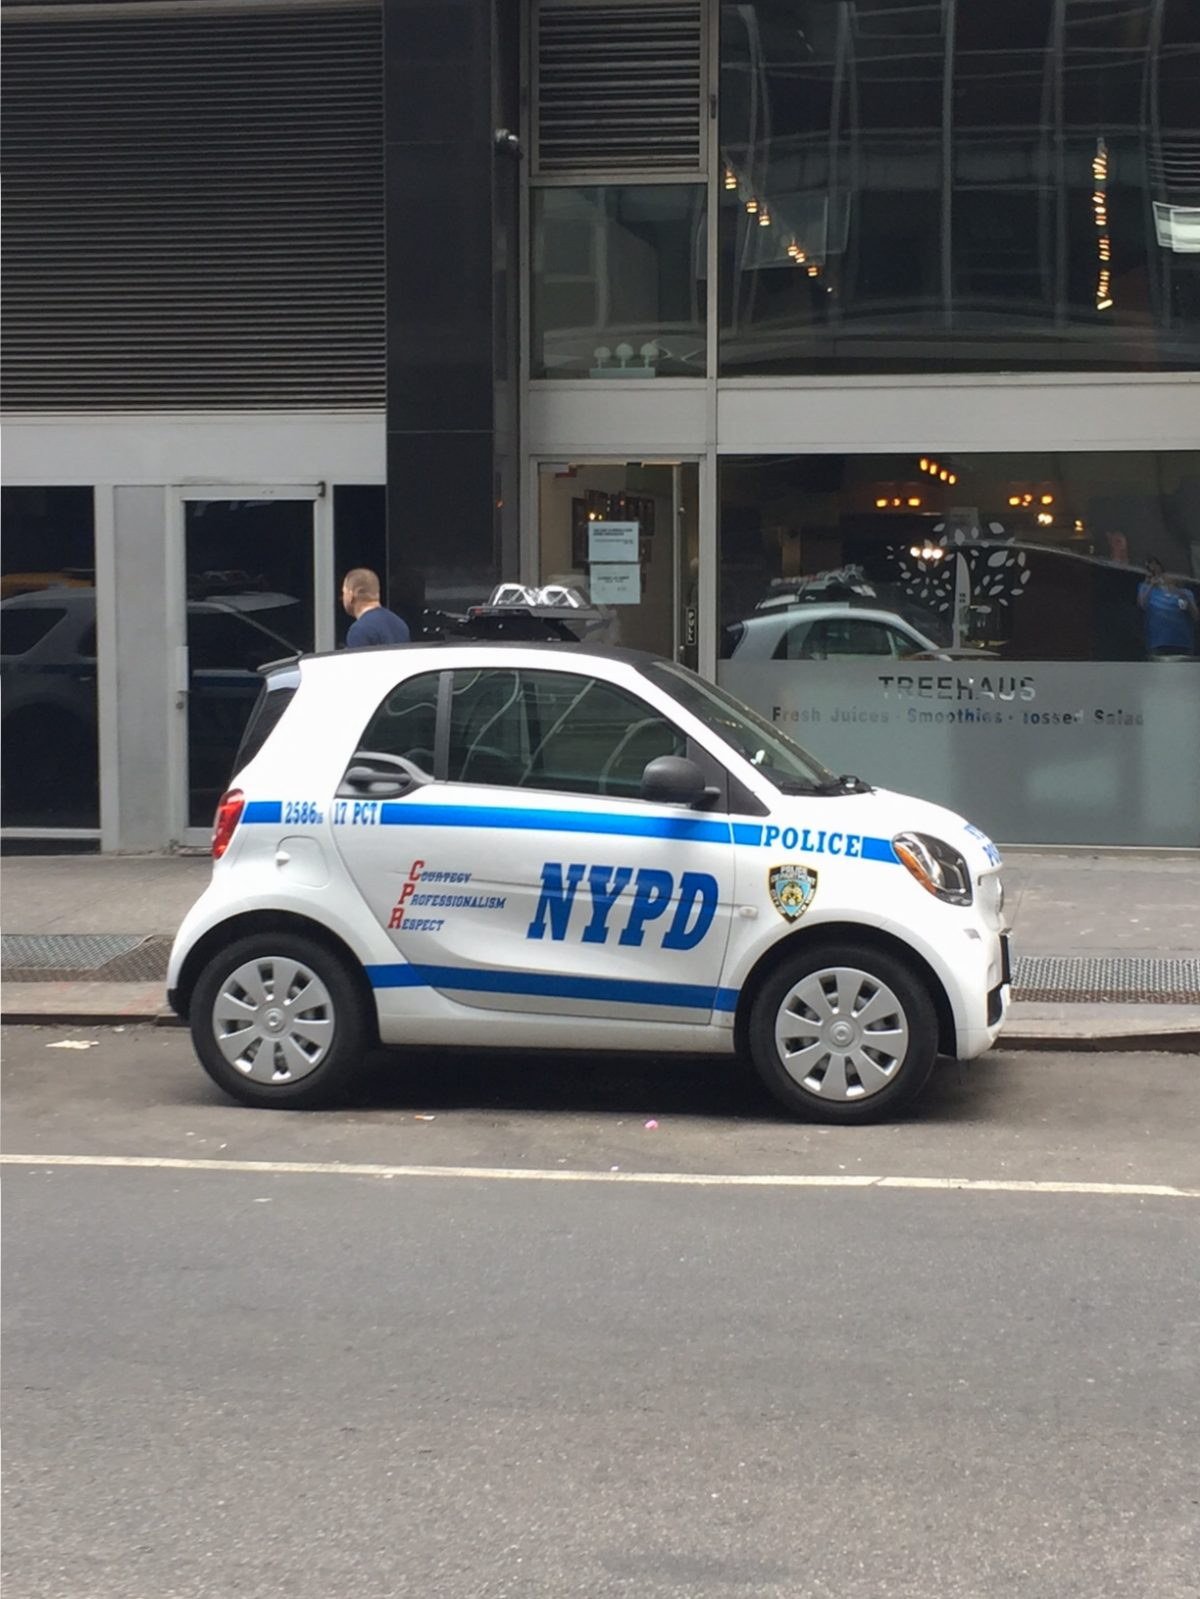 Law and Order in the City